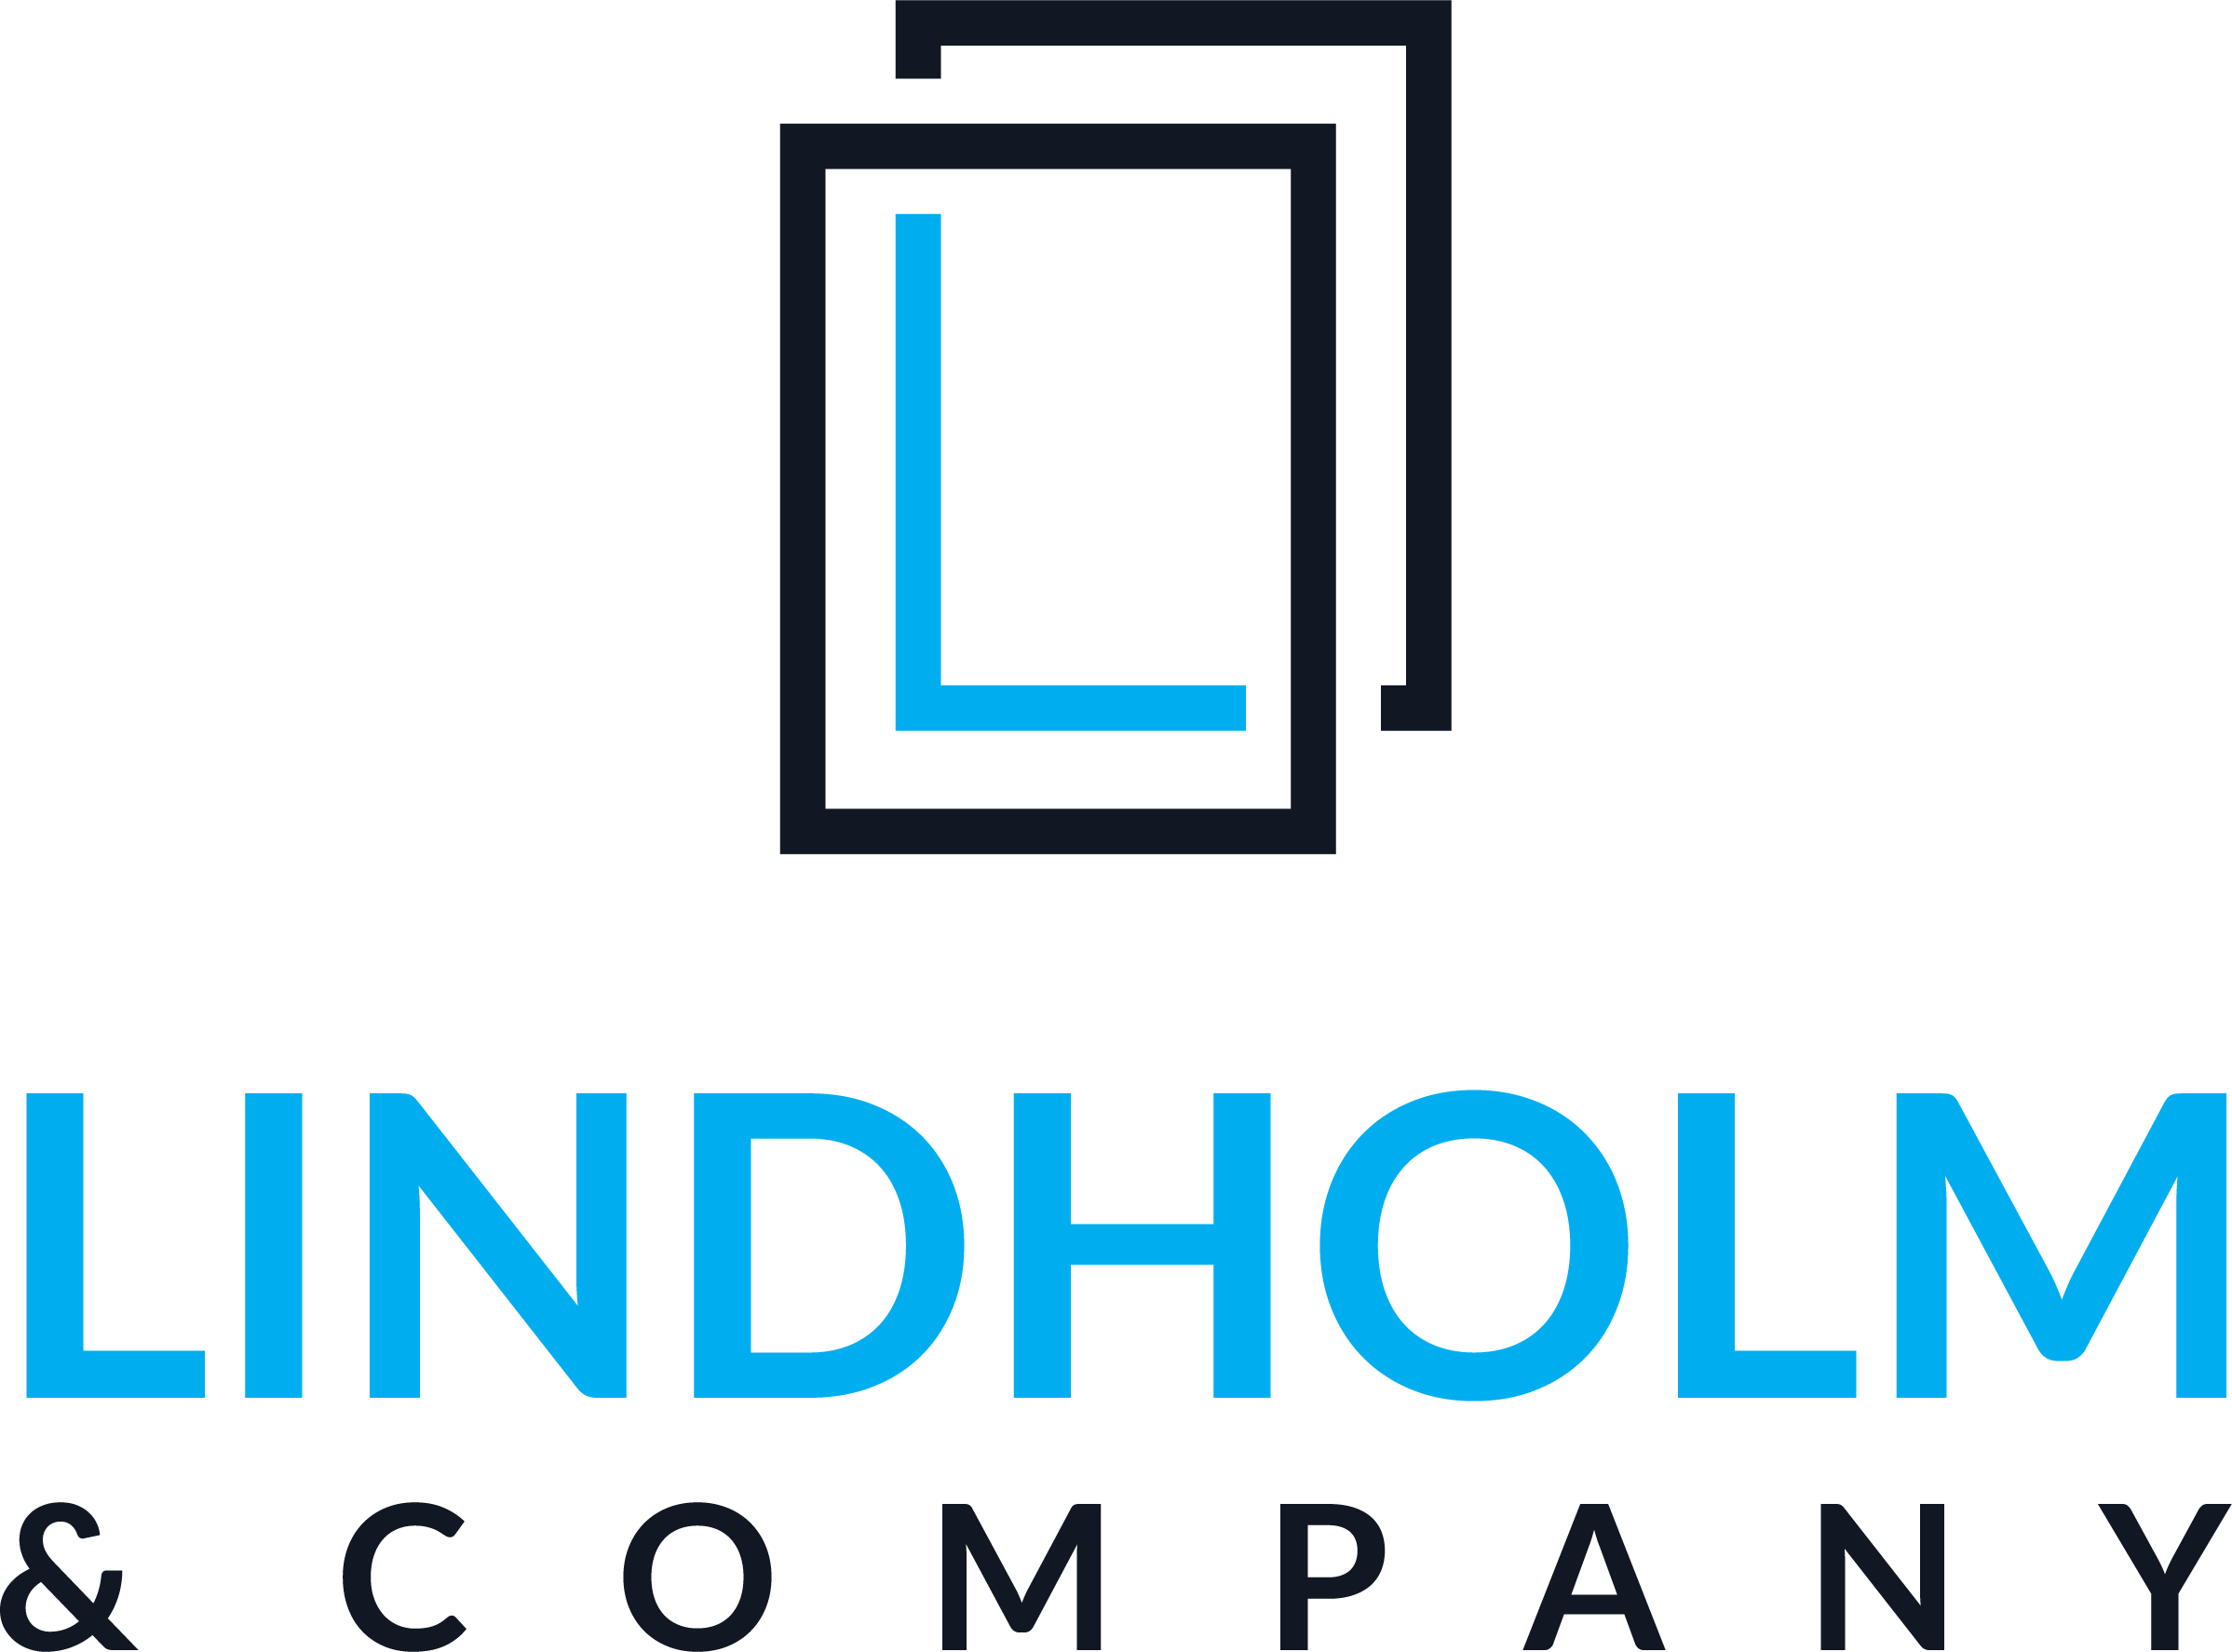 Lindholm & Company Offers Real Estate Professionals and Business Owners the Opportunity to Win the Battle Against High Taxes